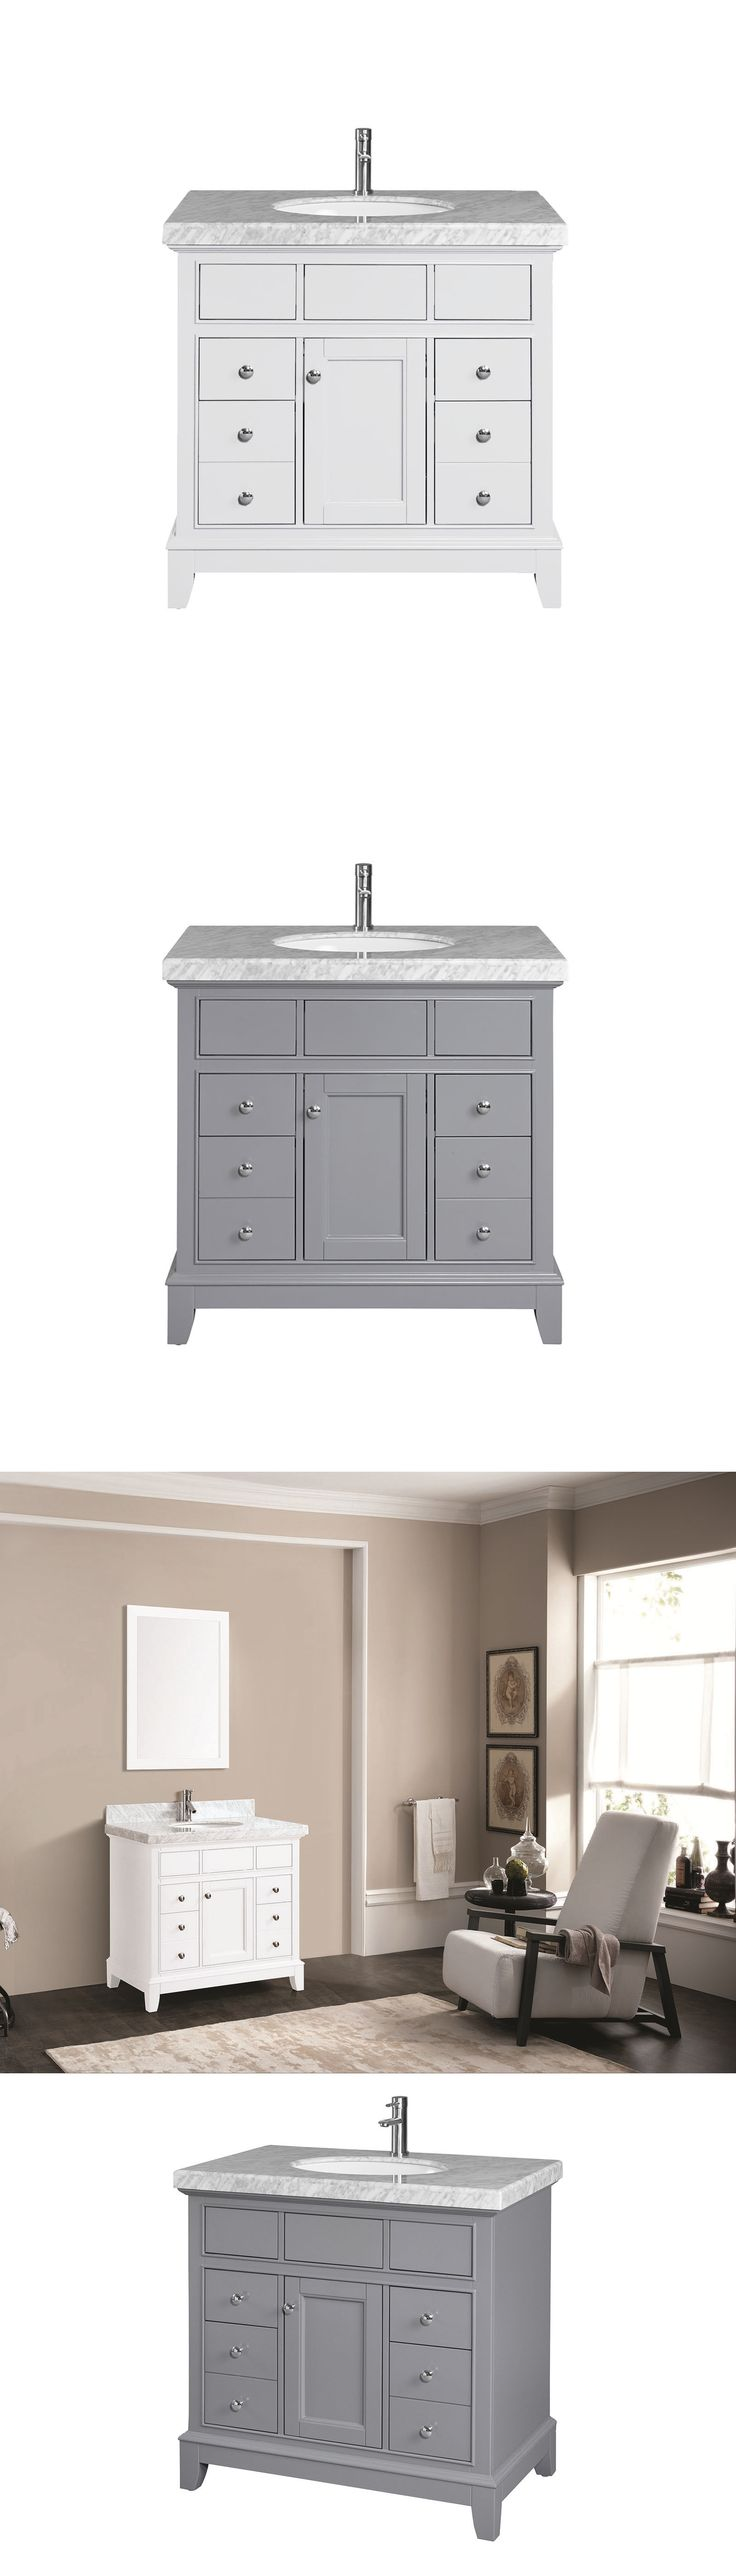 Wyndham collection amare 48 quot dove gray single vanity white man made - Vanities 115625 Daytona 36 Inch Small Bathroom Vanity Cabinet Single Sink 1 Door 4 Drawers